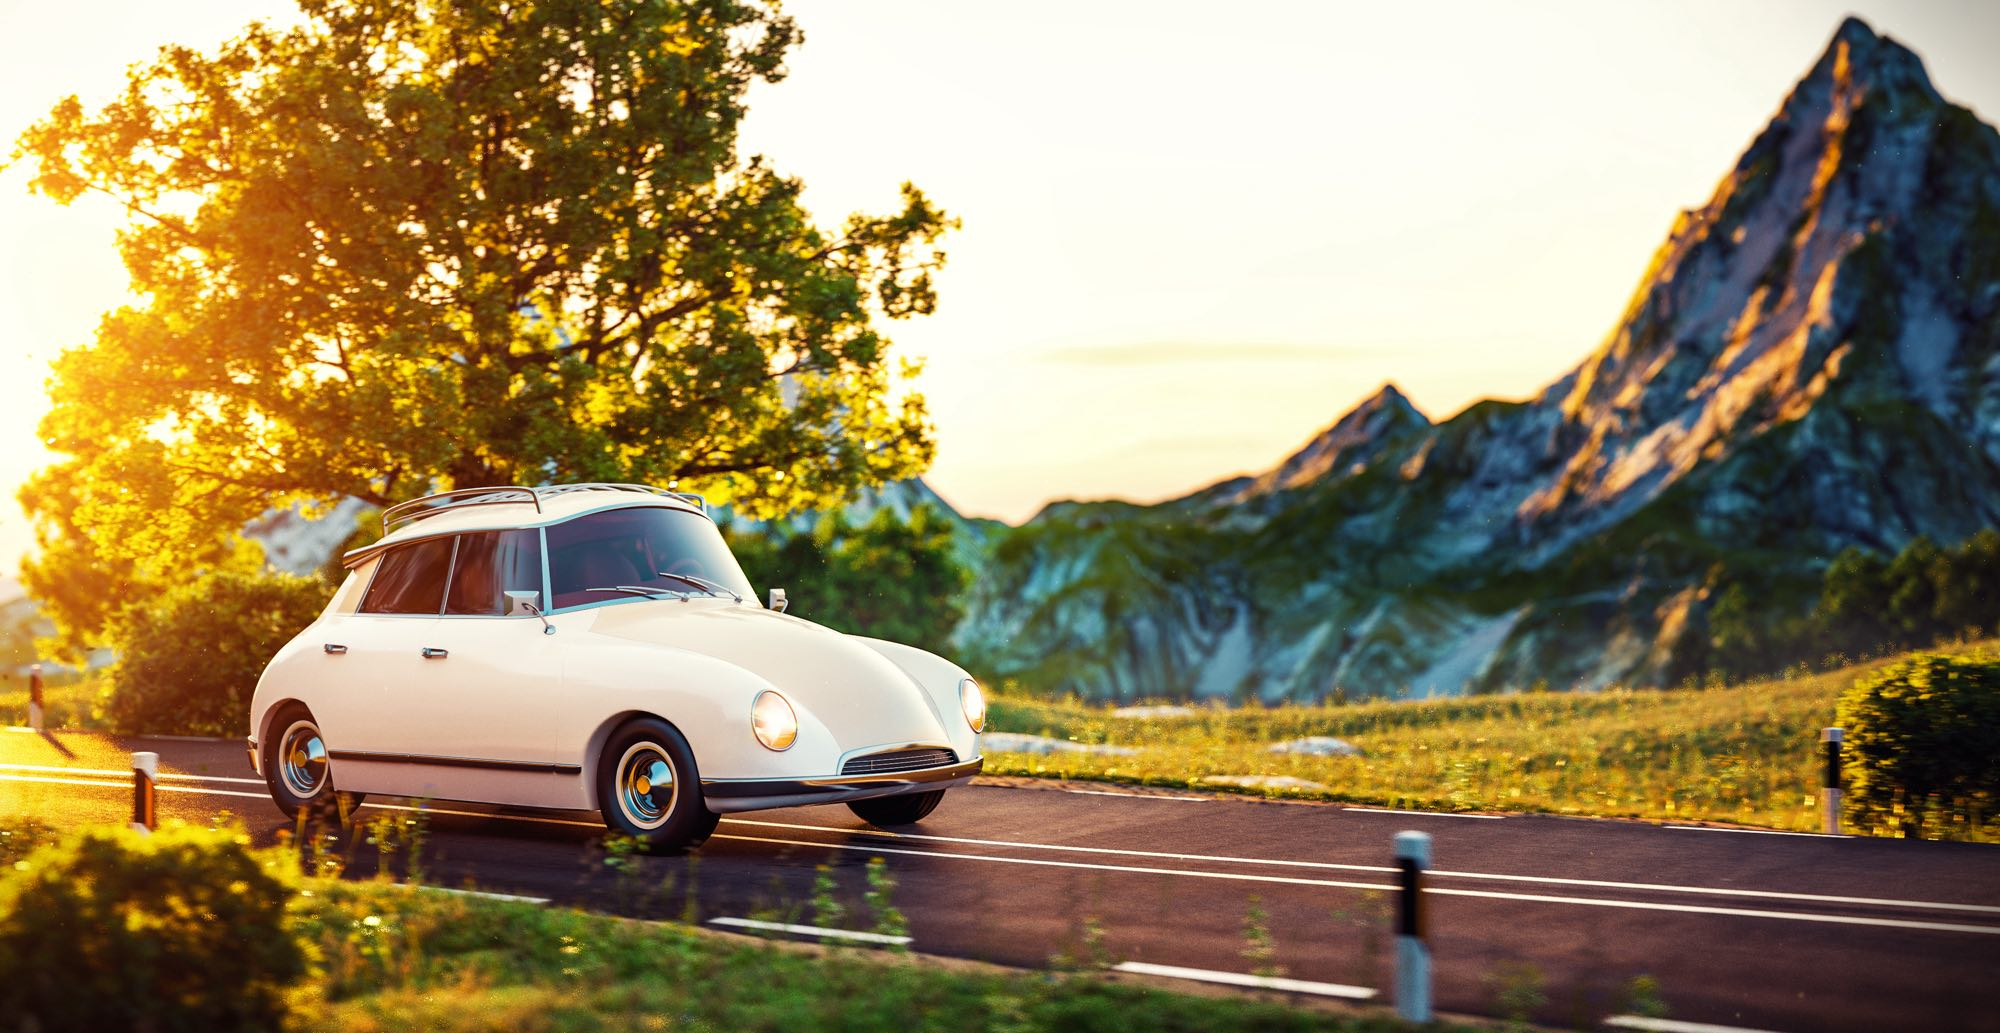 cute-little-retro-car-goes-by-wonderful-countrysid-PETSR2M